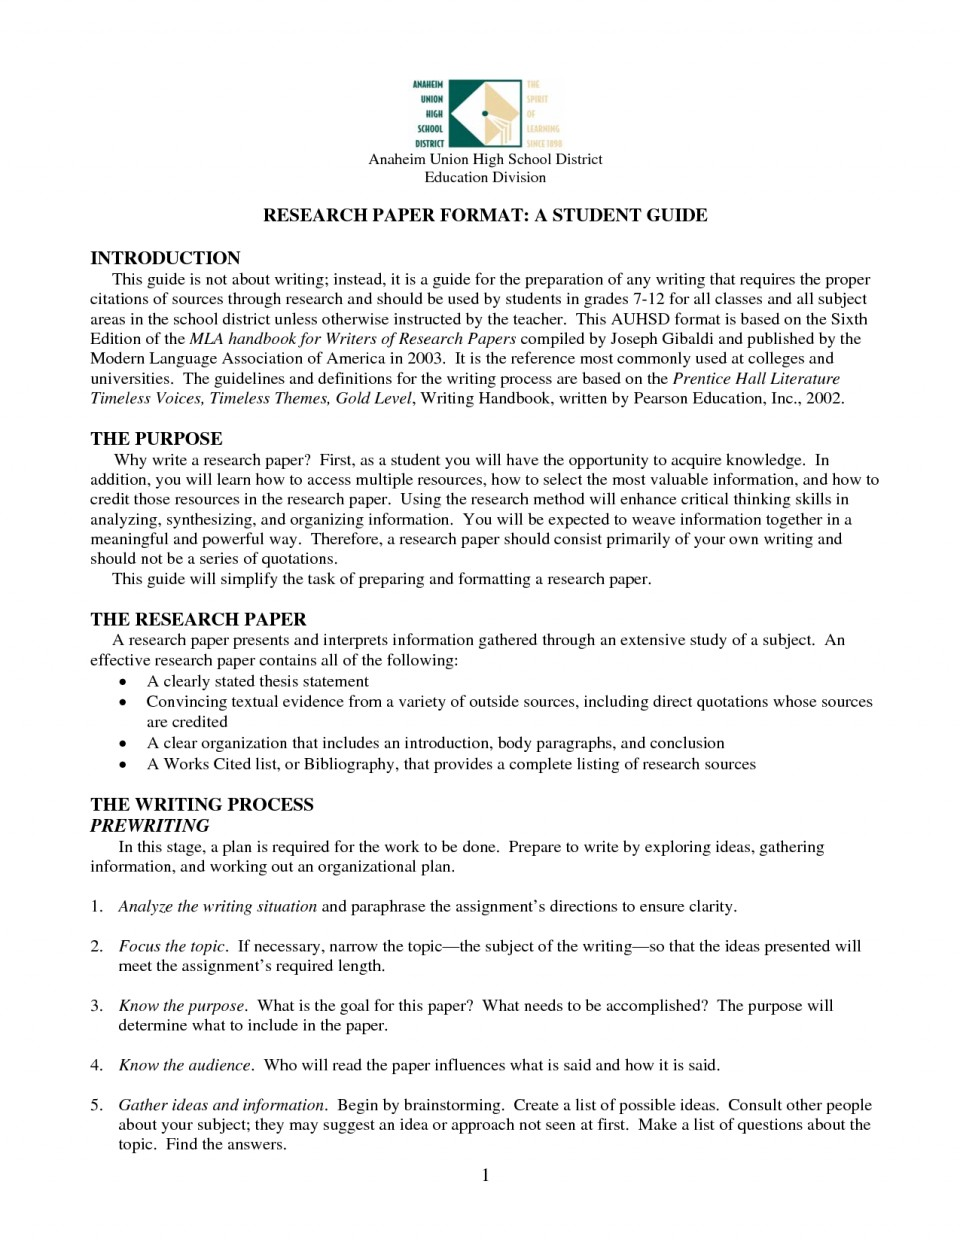 018 Best Research Paper Topics Ideas Of Outline Nice For Papers High School Stupendous Top 10 In Computer Science Sports Technology 960